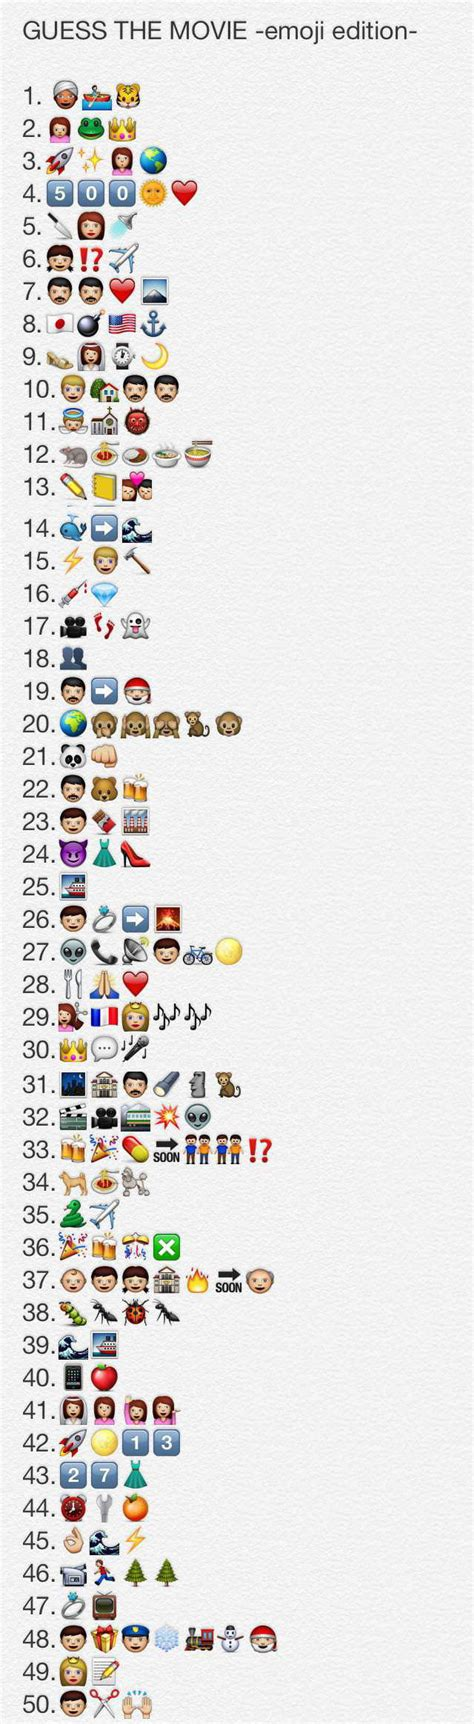 guess the emoji film and girl movie titles in emojis images